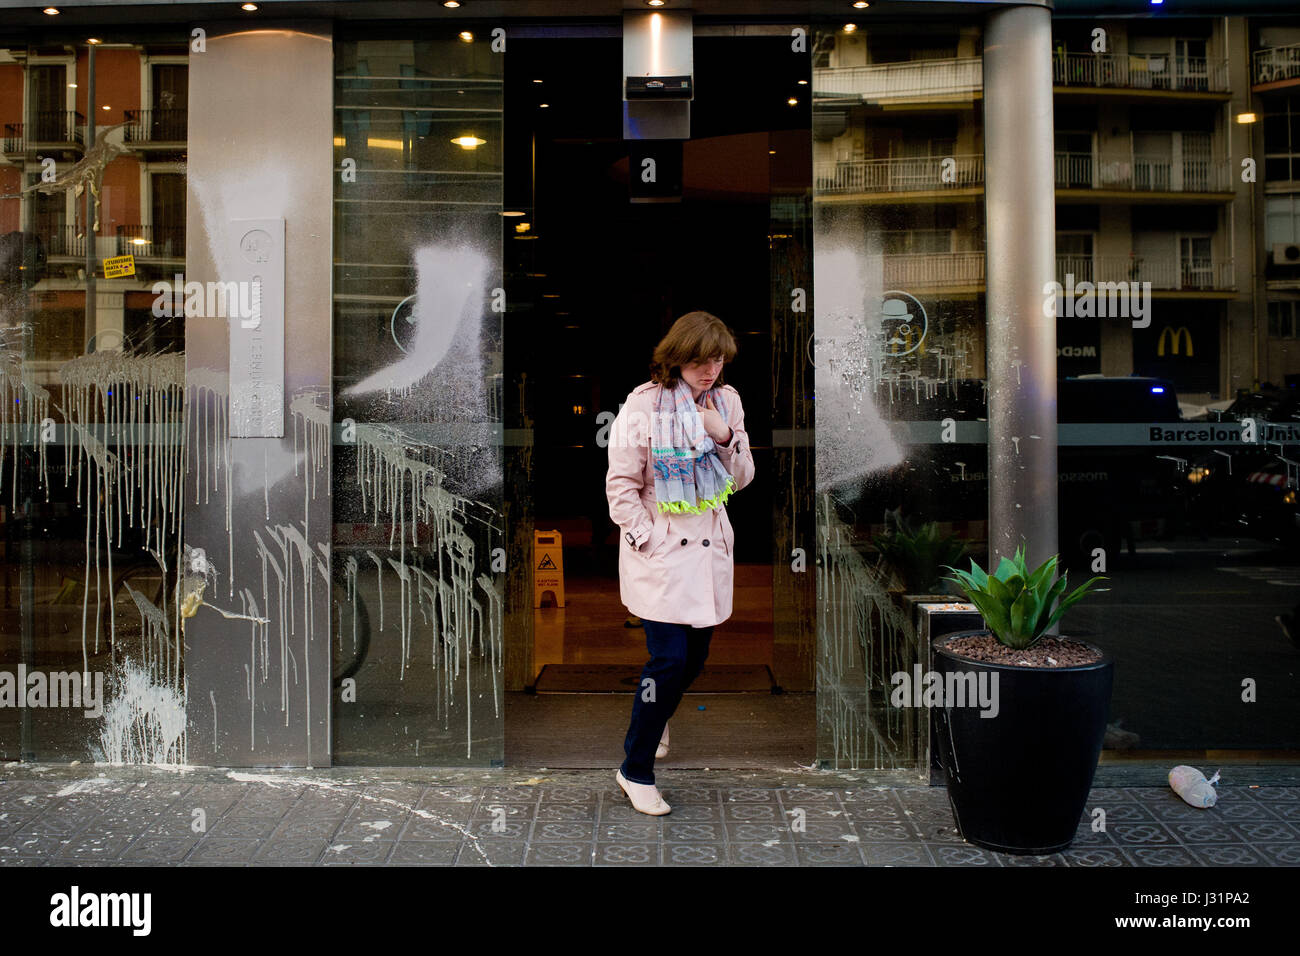 May 1, 2017 - Barcelona, Catalonia, Spain - A woman leaves a vandalized hotel door entrance during a May Day anti - Stock Image